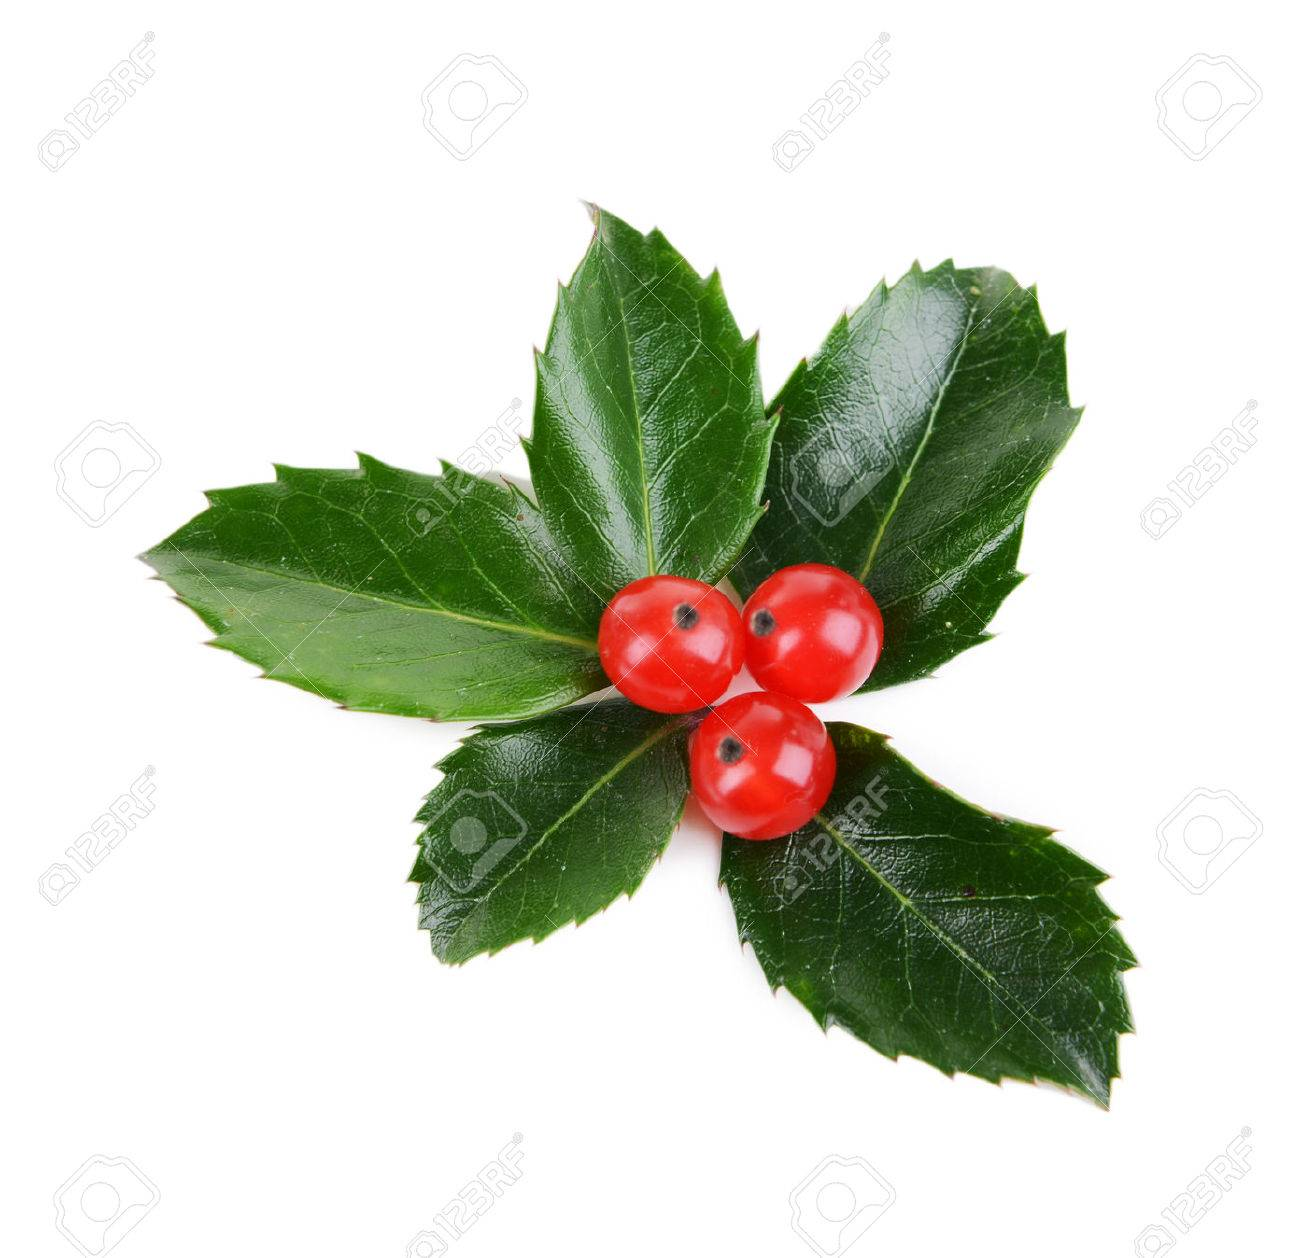 leaves of mistletoe with berries isolated on white stock photo